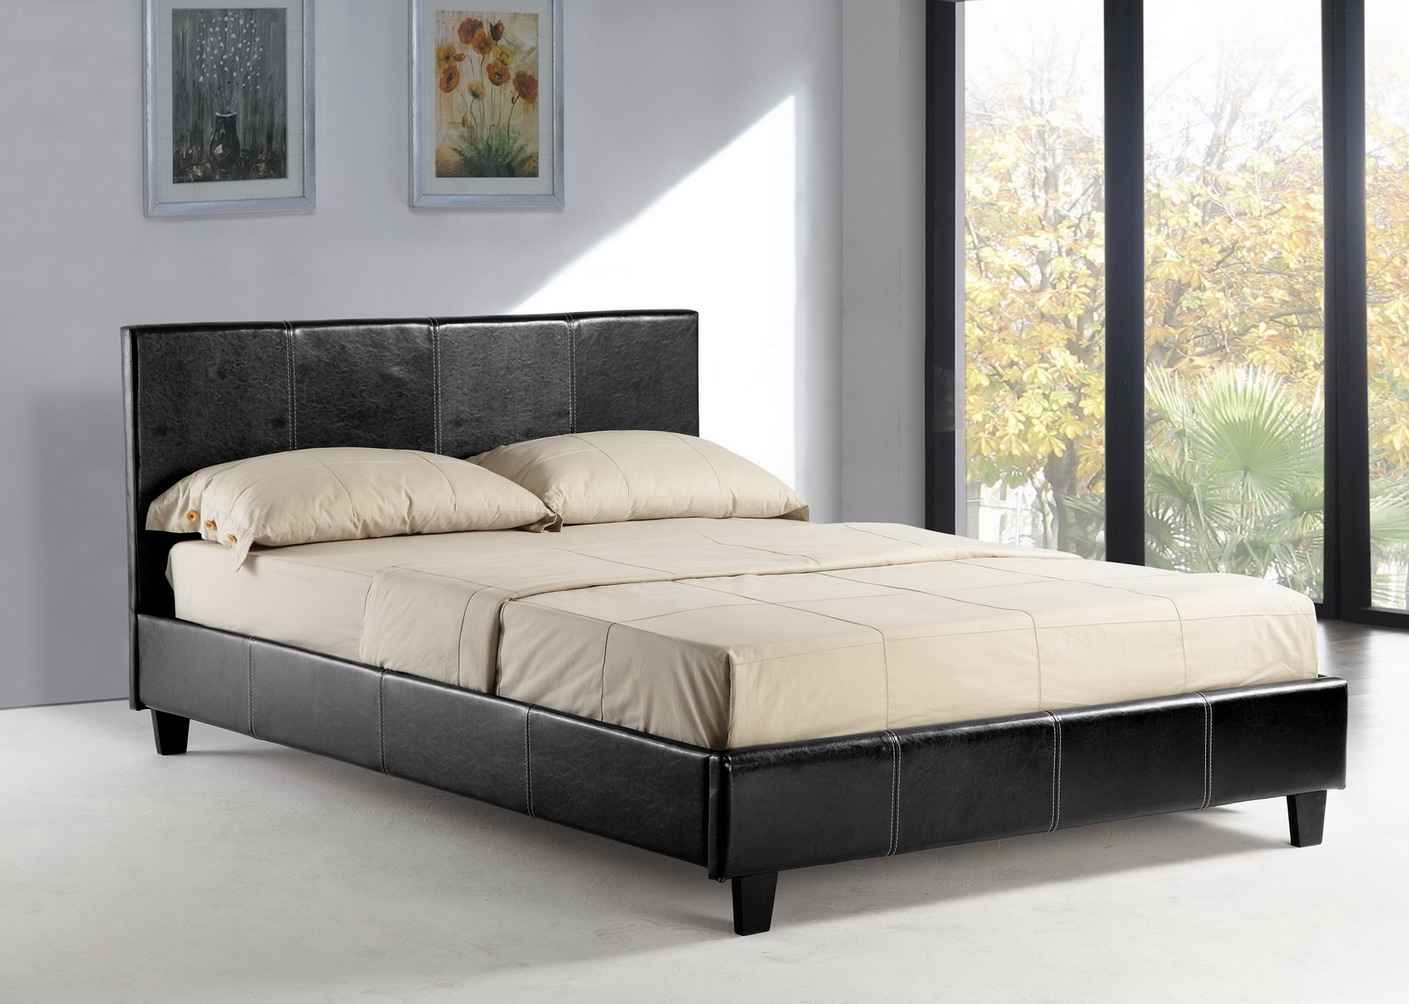 Discount Beds Cheap Queen Mattresses Available At Stores